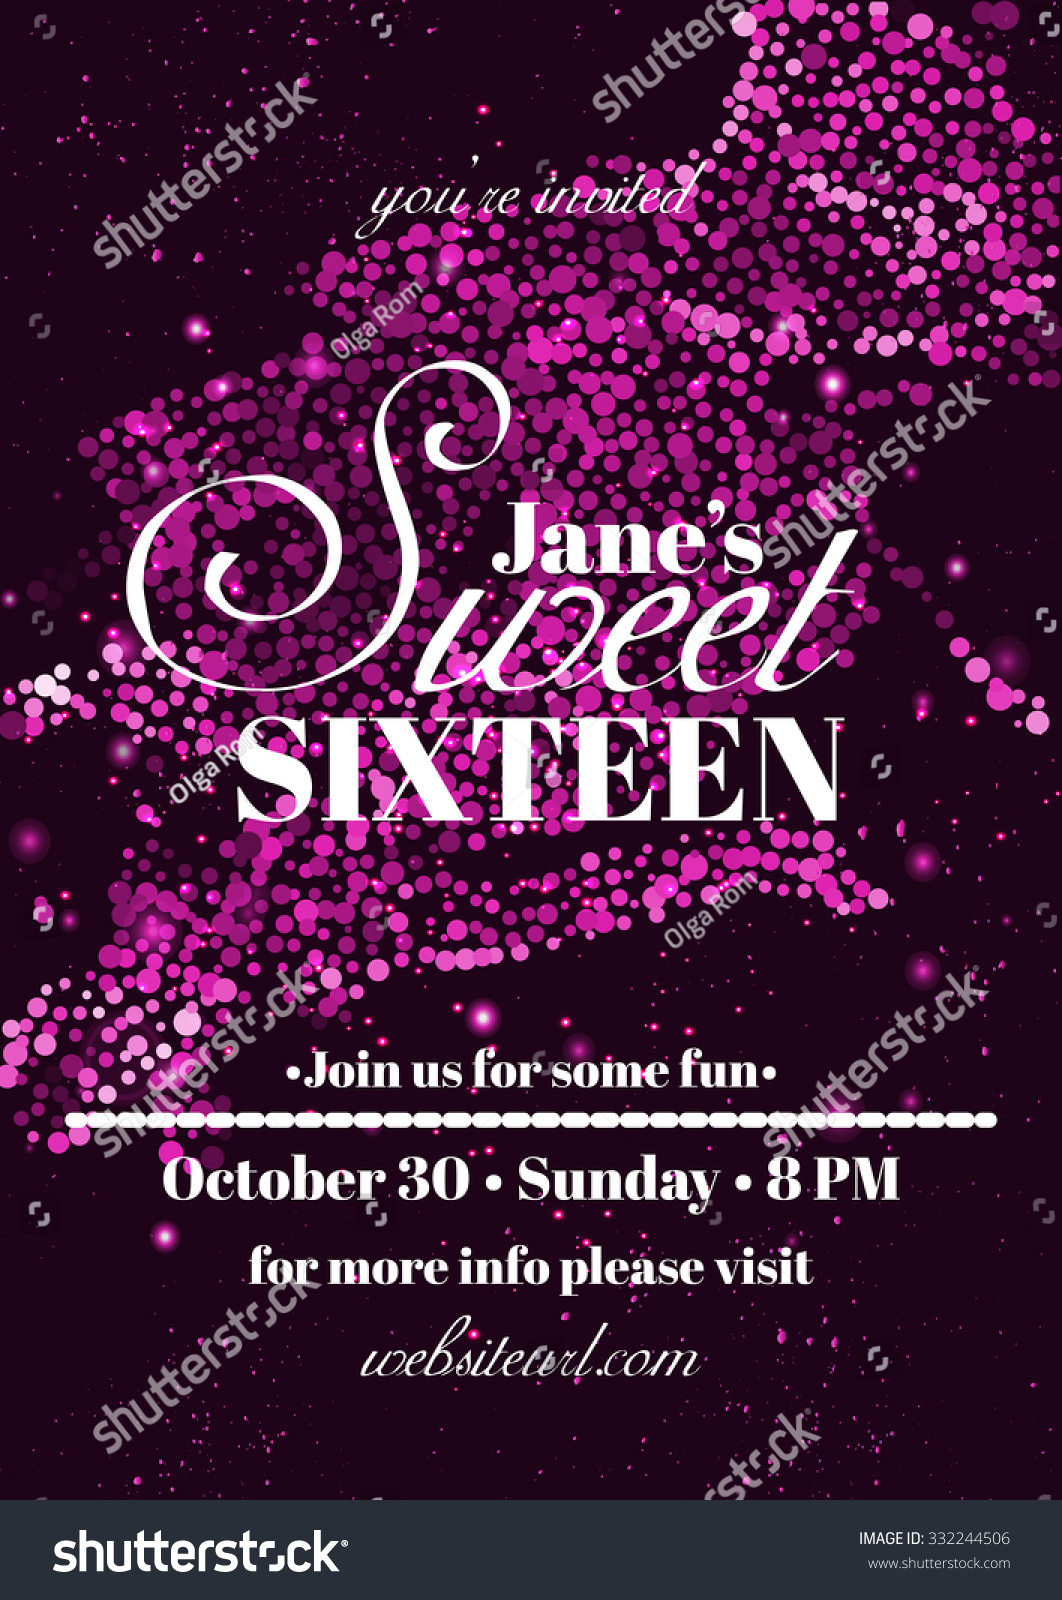 sweet sixteen glitter party invitation flyer stock vector 332244506 shutterstock. Black Bedroom Furniture Sets. Home Design Ideas